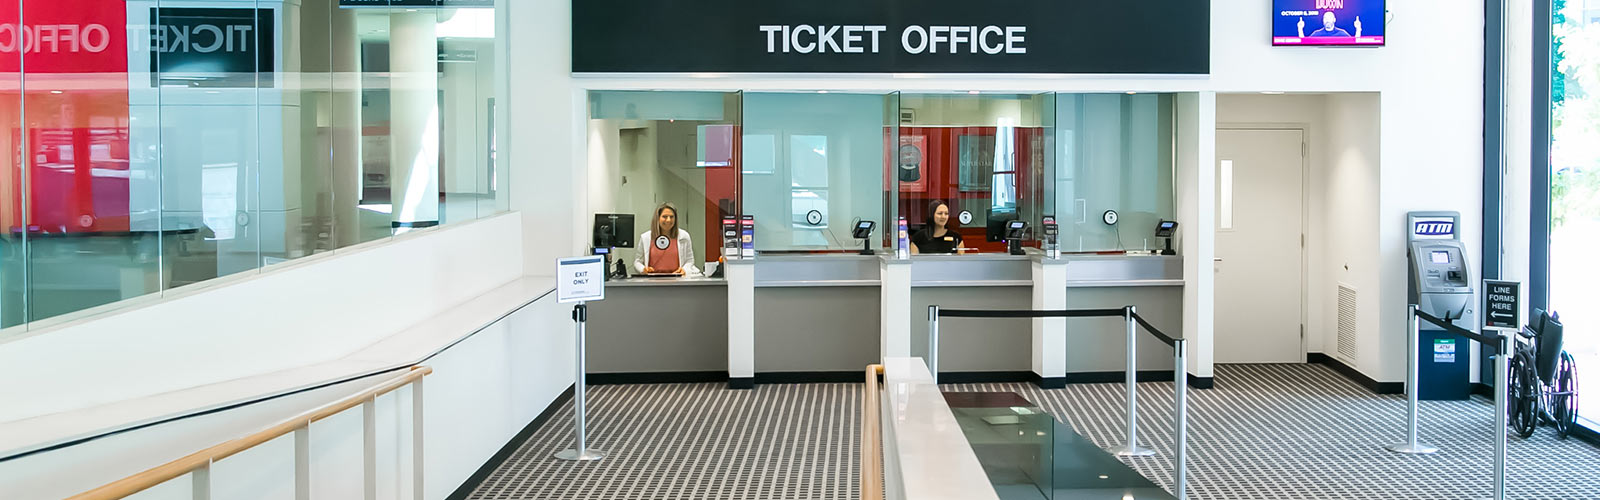 Civic Center Ticket Office